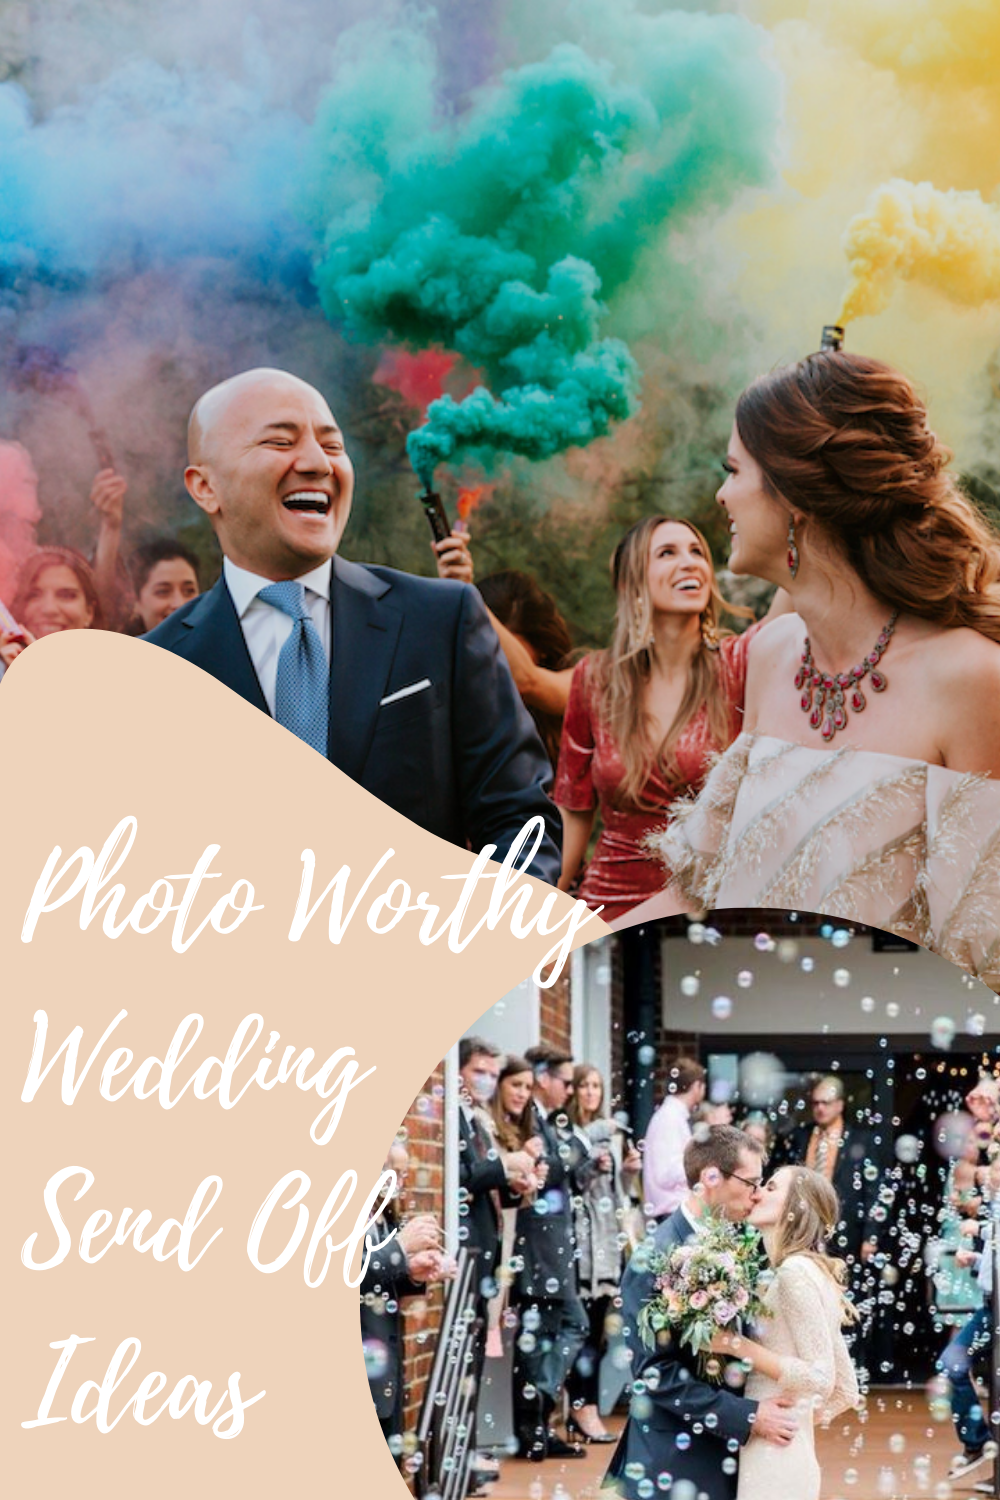 Wedding Send Off Ideas For Great Send Off Photos